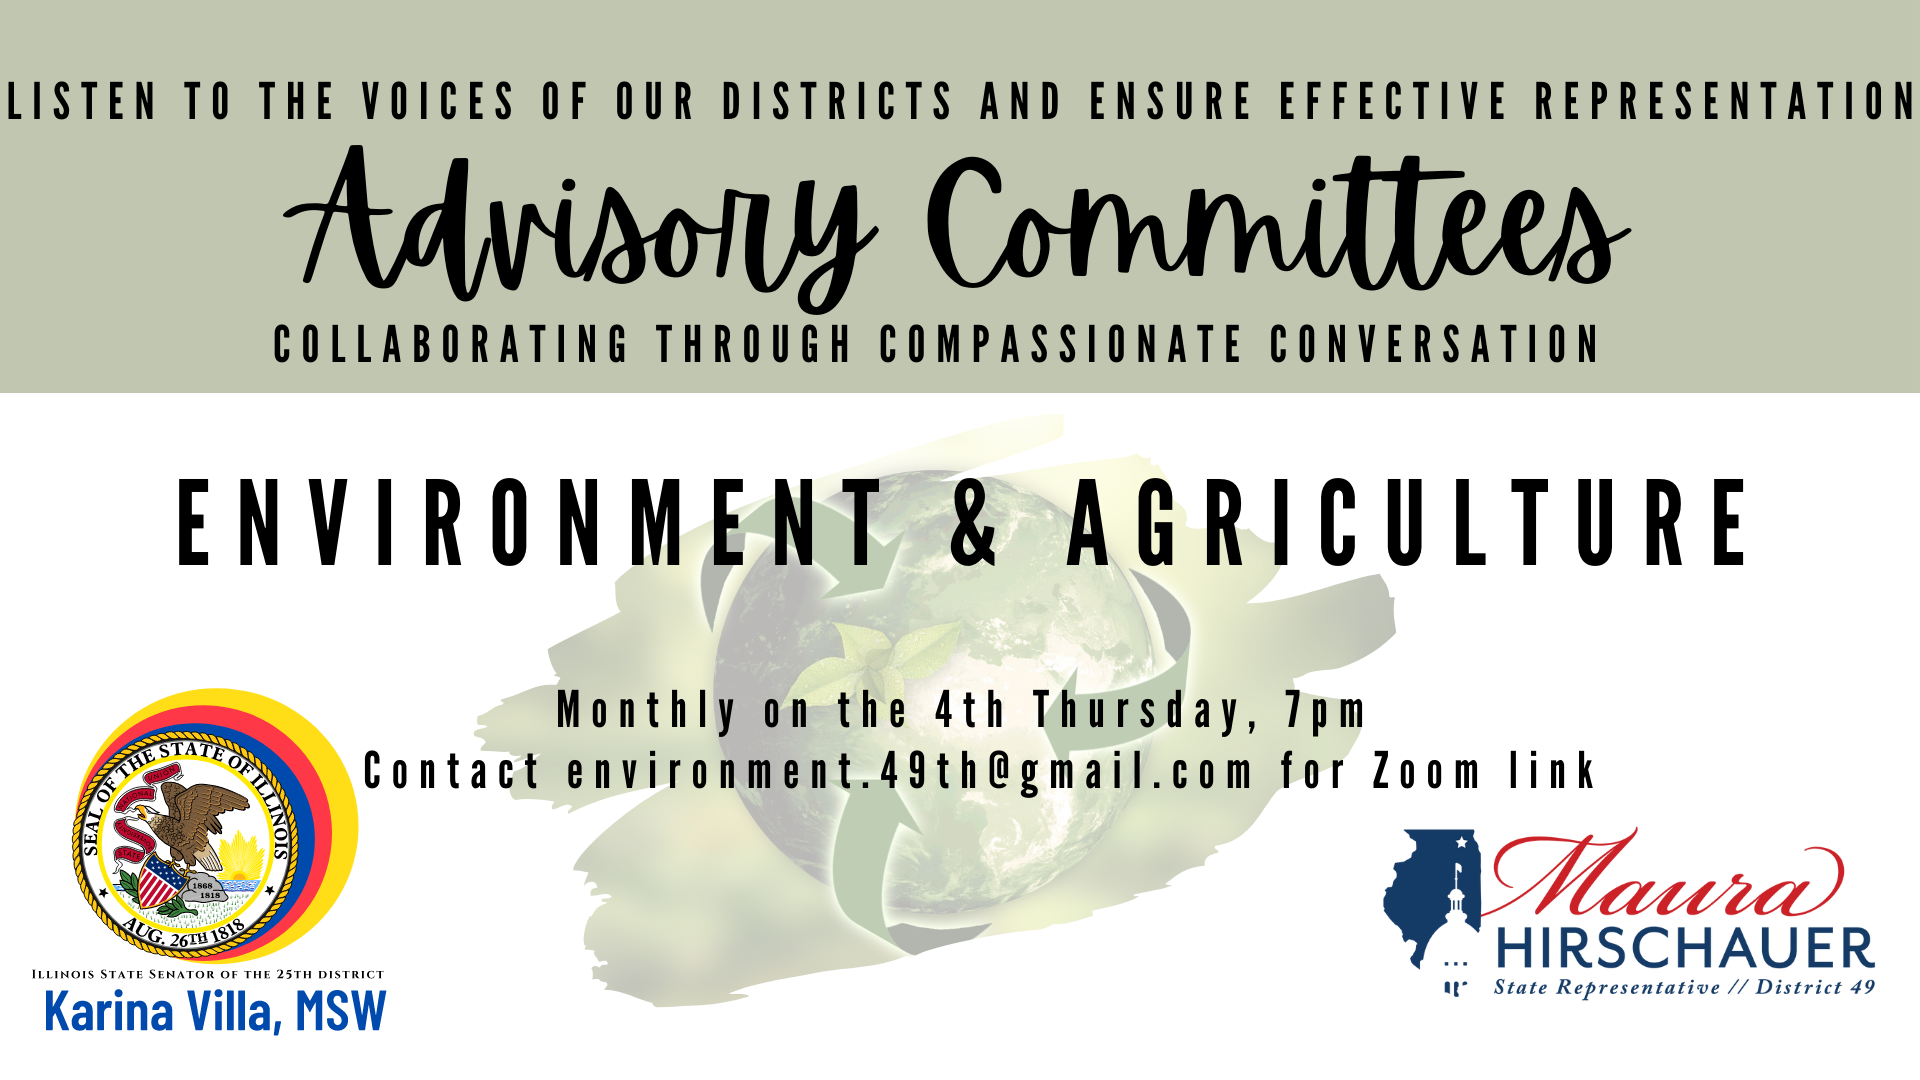 Environment & Agriculture Advisory Committee